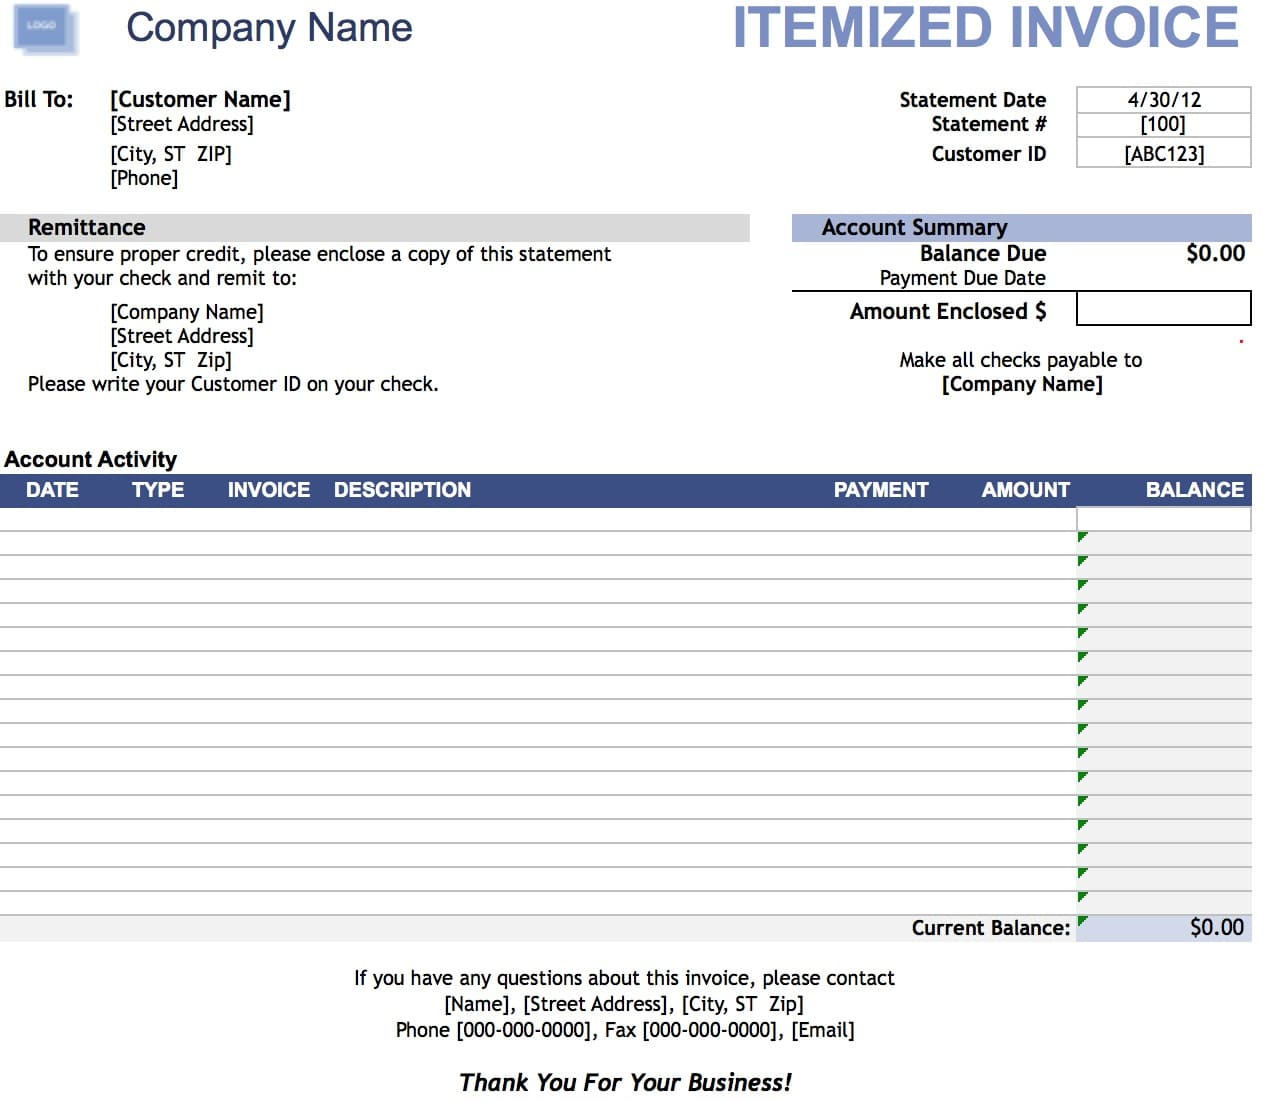 Free Itemized Invoice Template Excel PDF Word Doc - Invoice examples in word for service business